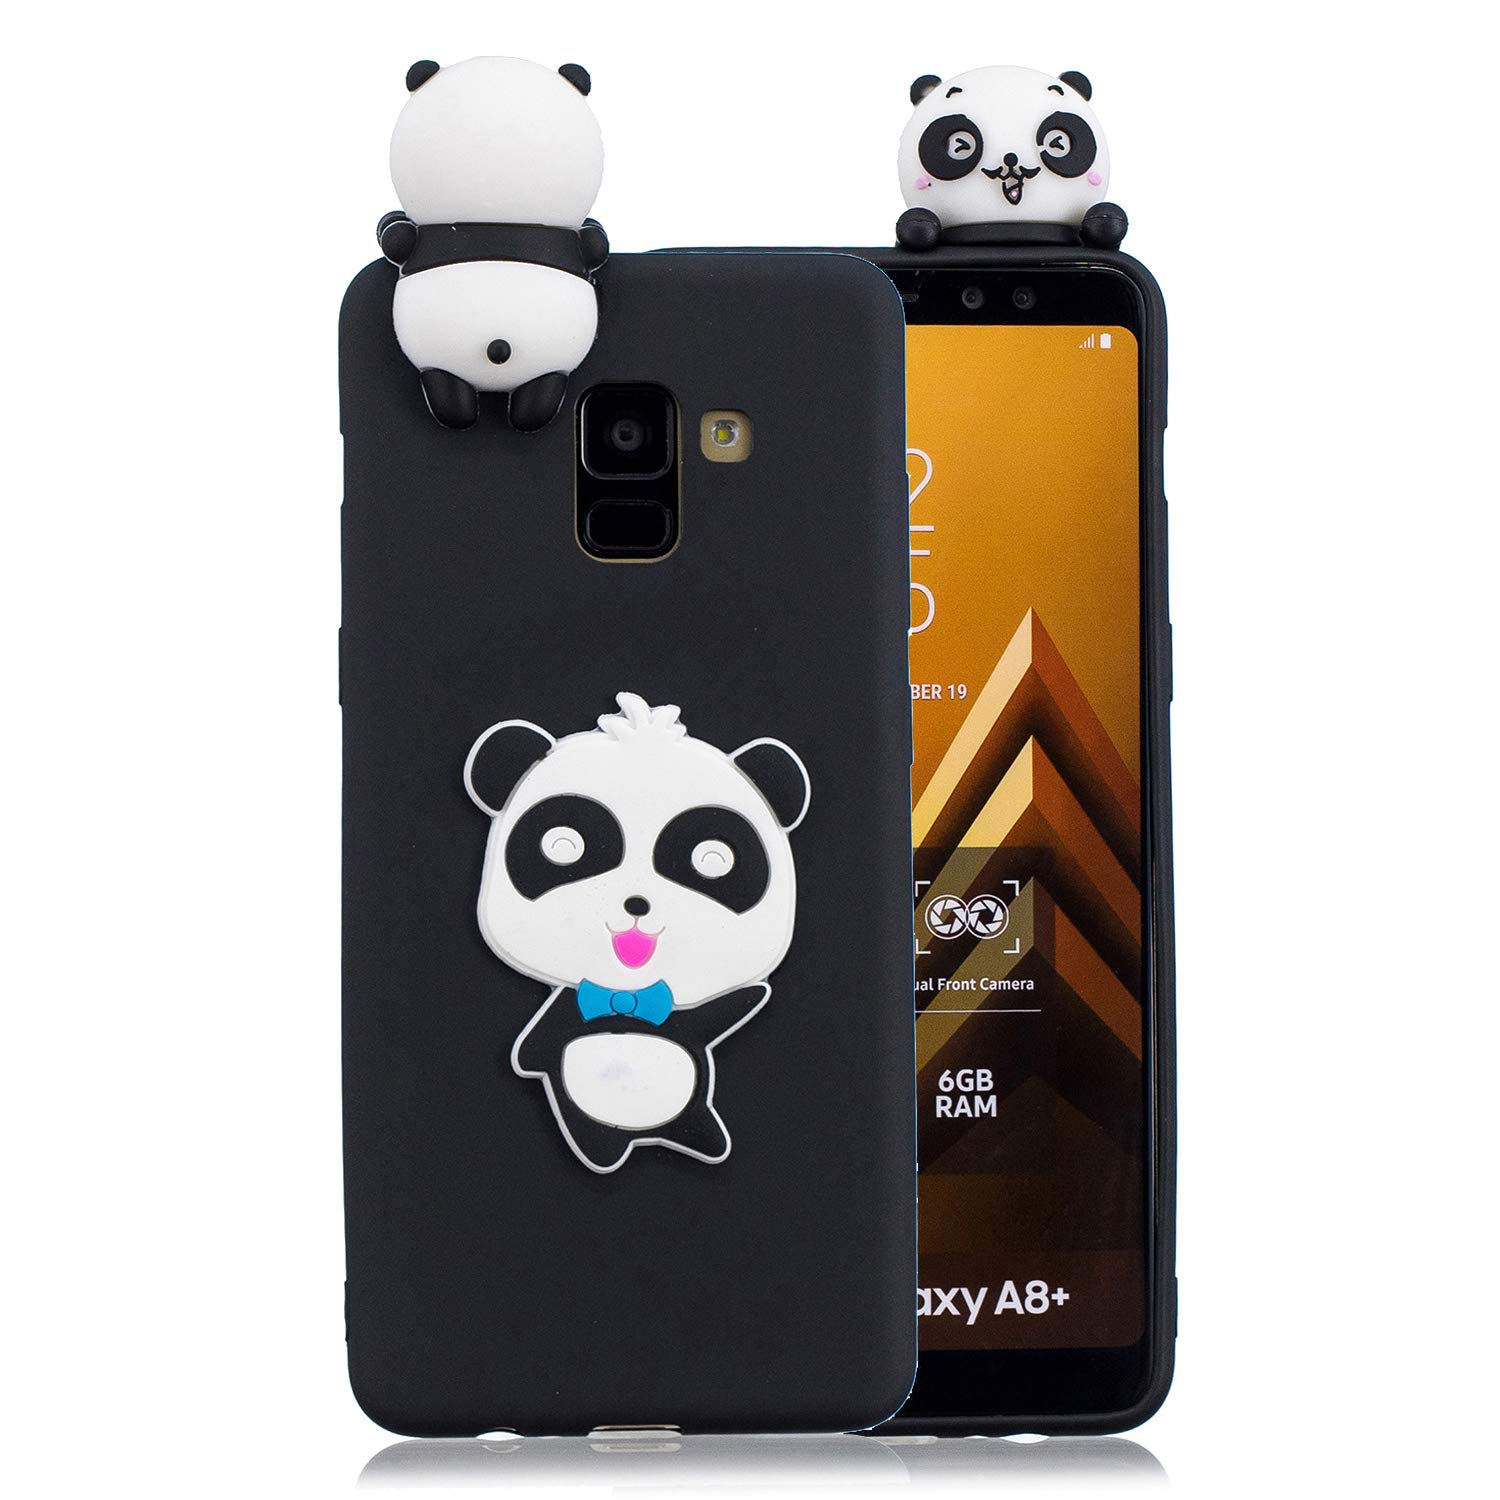 for Samsung Galaxy A8 2018 Silicone Case with Screen Protector,QFFUN 3D Cartoon [Panda] Pattern Design Soft Flexible Slim Fit Gel Rubber Cover,Shockproof Anti-Scratch Protective Case Bumper by QFFUN (Image #1)